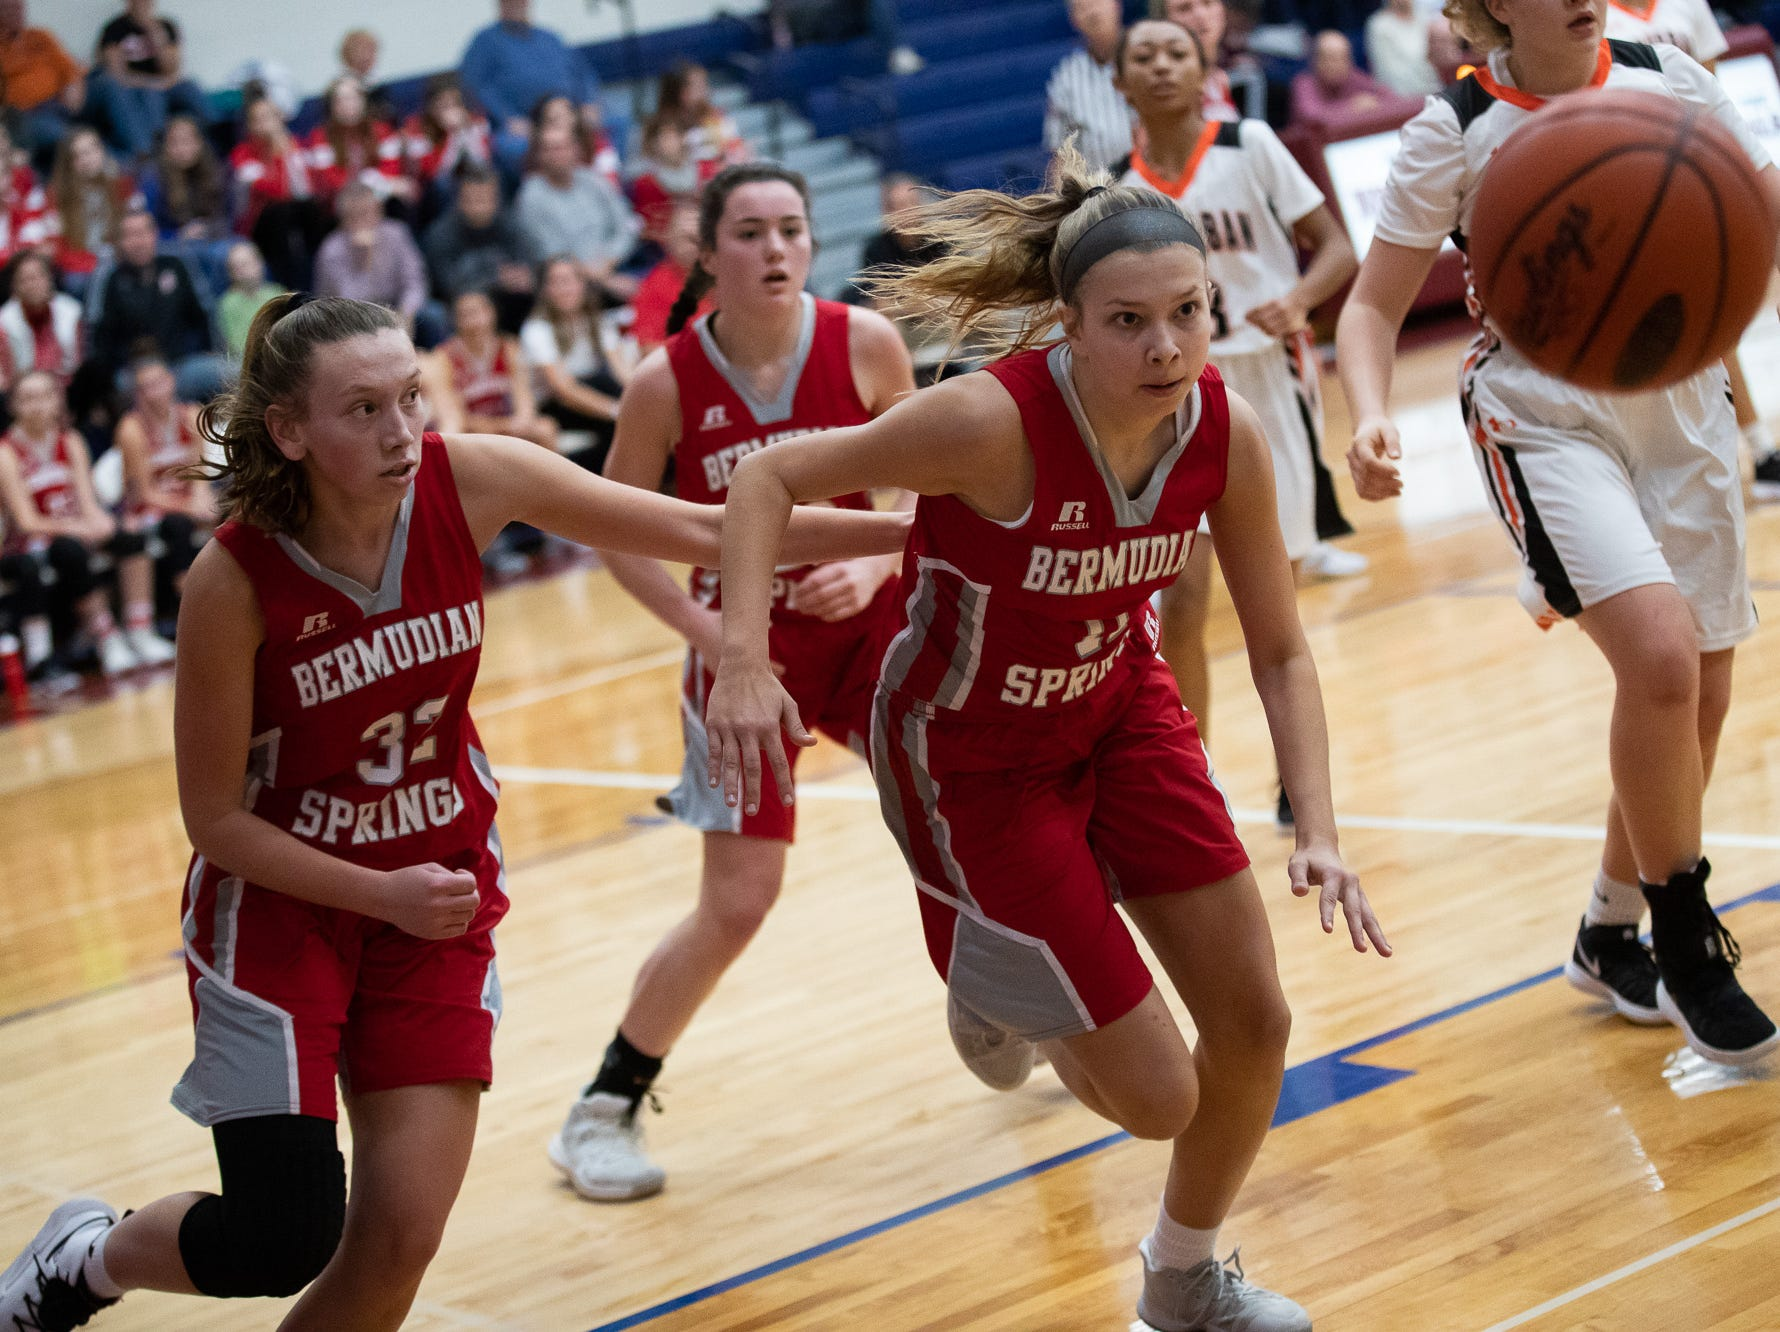 Bermudian Springs' Leah Bealmear (11) races towards the ball during the consolation game between Bermudian Springs and York Suburban during the New Oxford Girls Basketball Tip-Off Tournament, Saturday, Dec. 8, 2018, in New Oxford. The Bermudian Springs Lady Eagles defeated the York Suburban Lady Trojans 60-58.